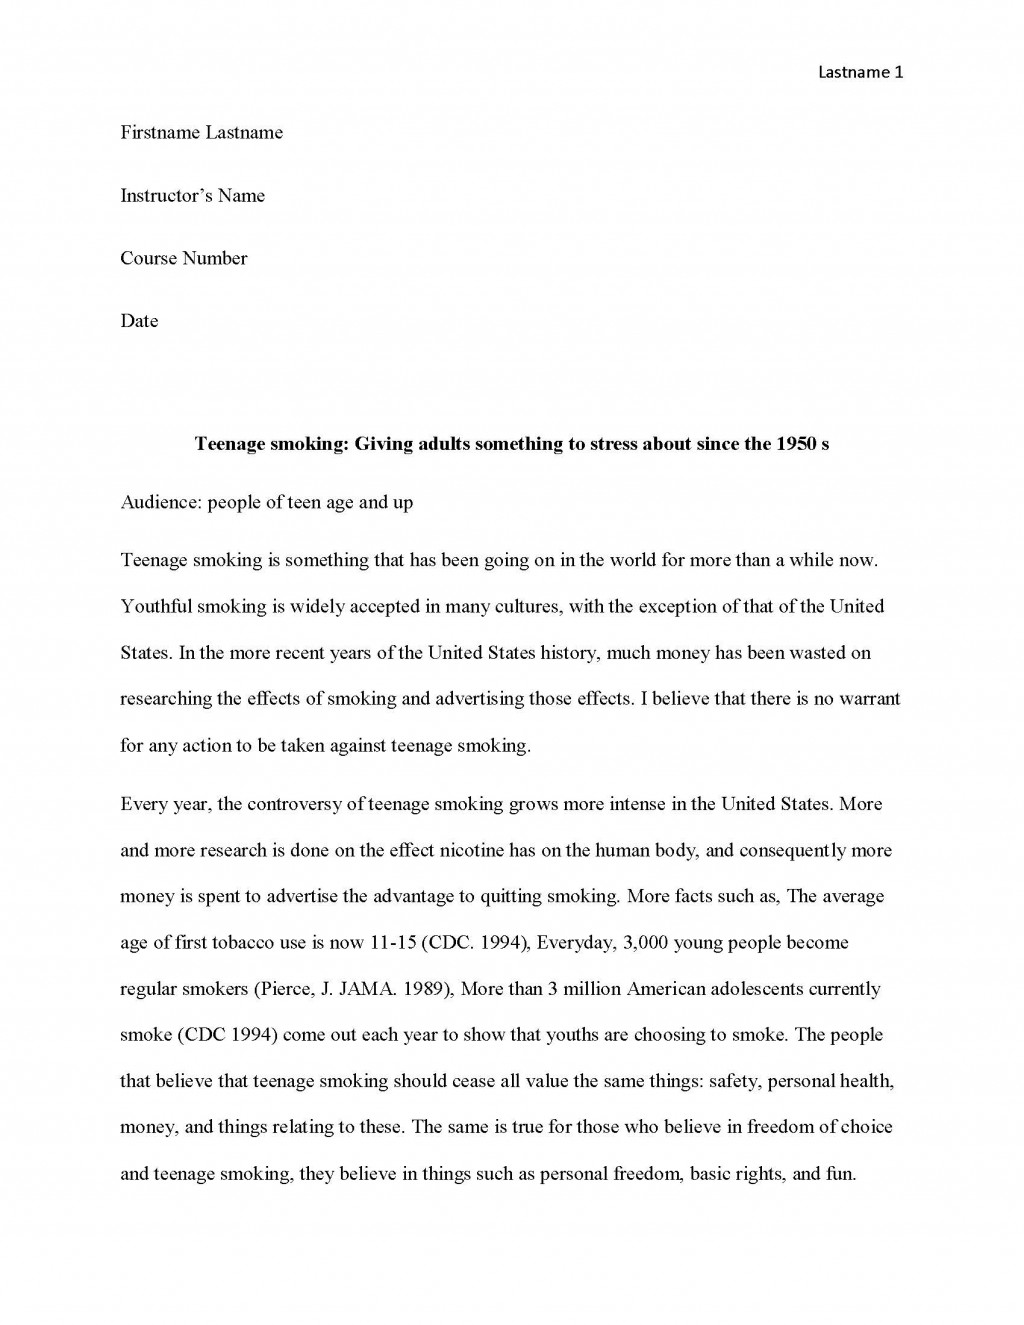 002 Antigone Essay Example Teen Smoking Free Sample Page 1 Remarkable Topics Introduction Sophocles Questions Large